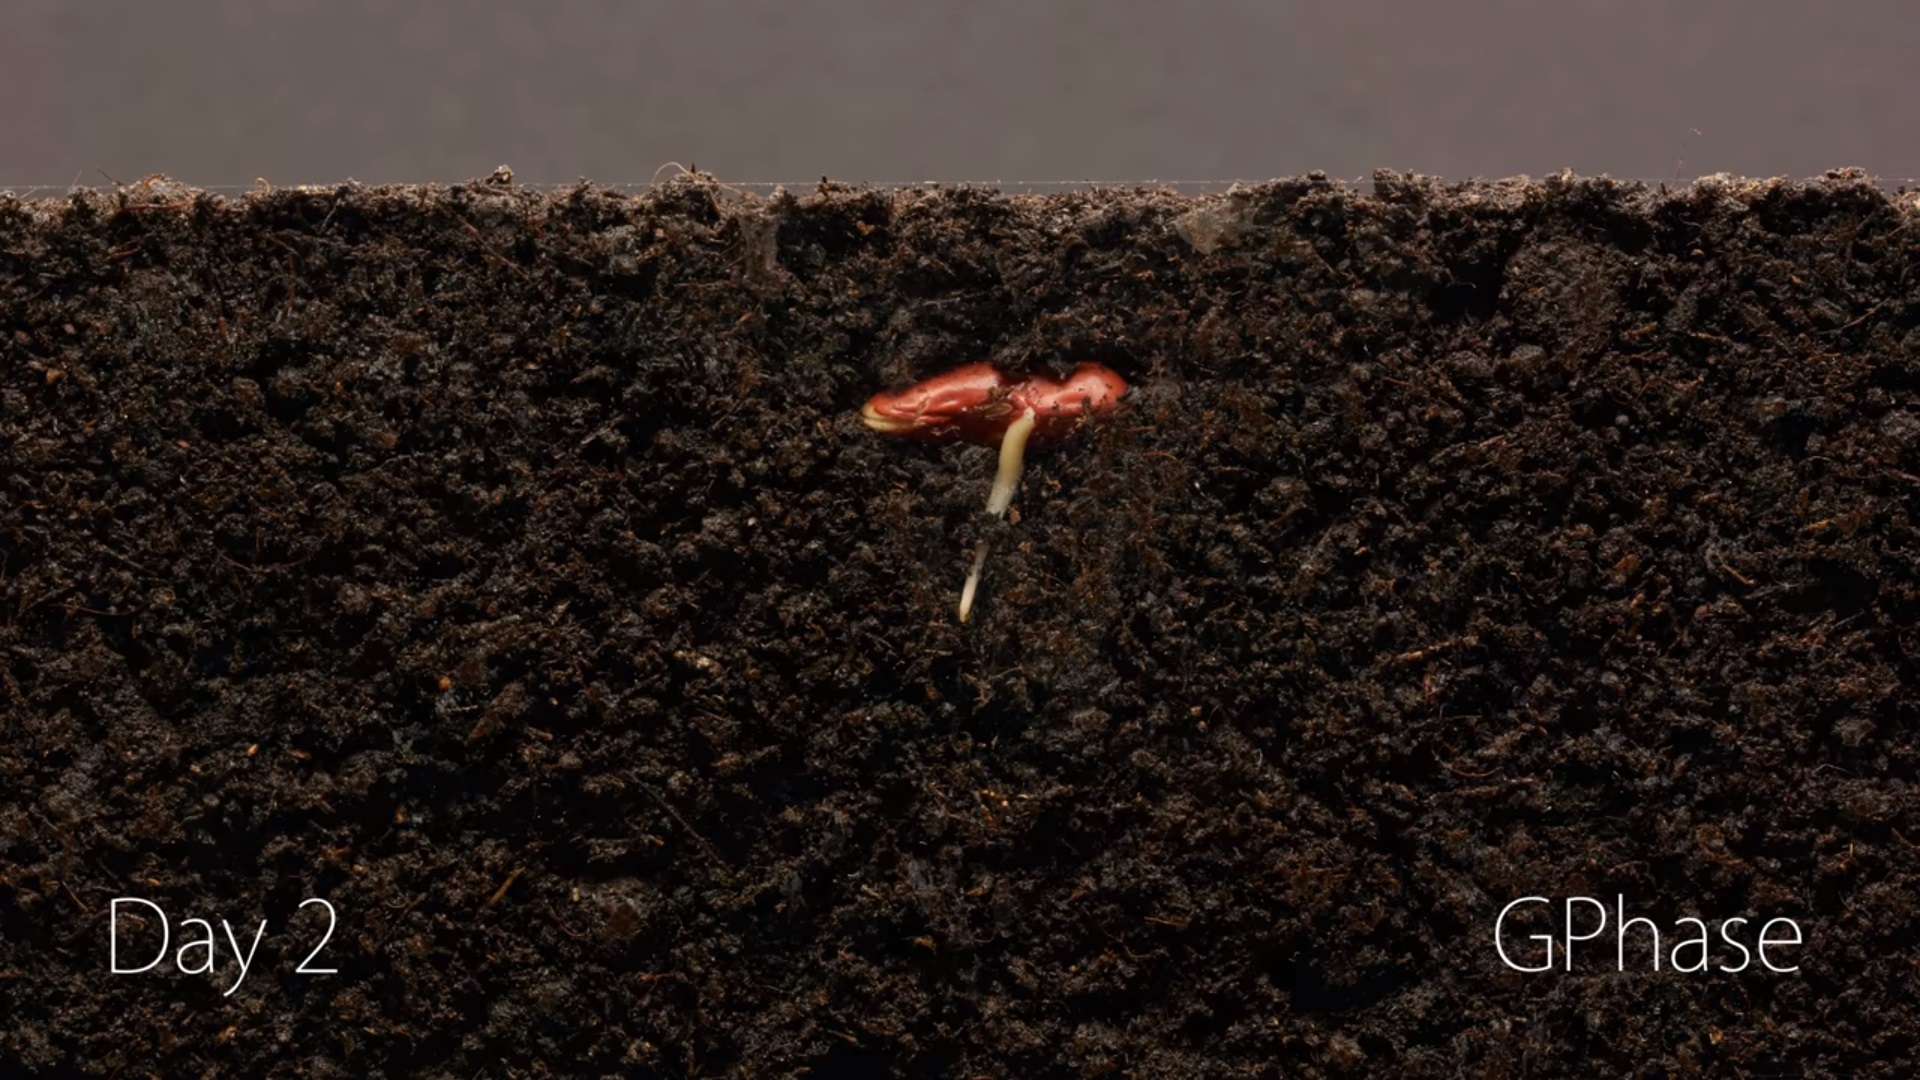 time lapse of a bean growing will make you realize nature is amazing